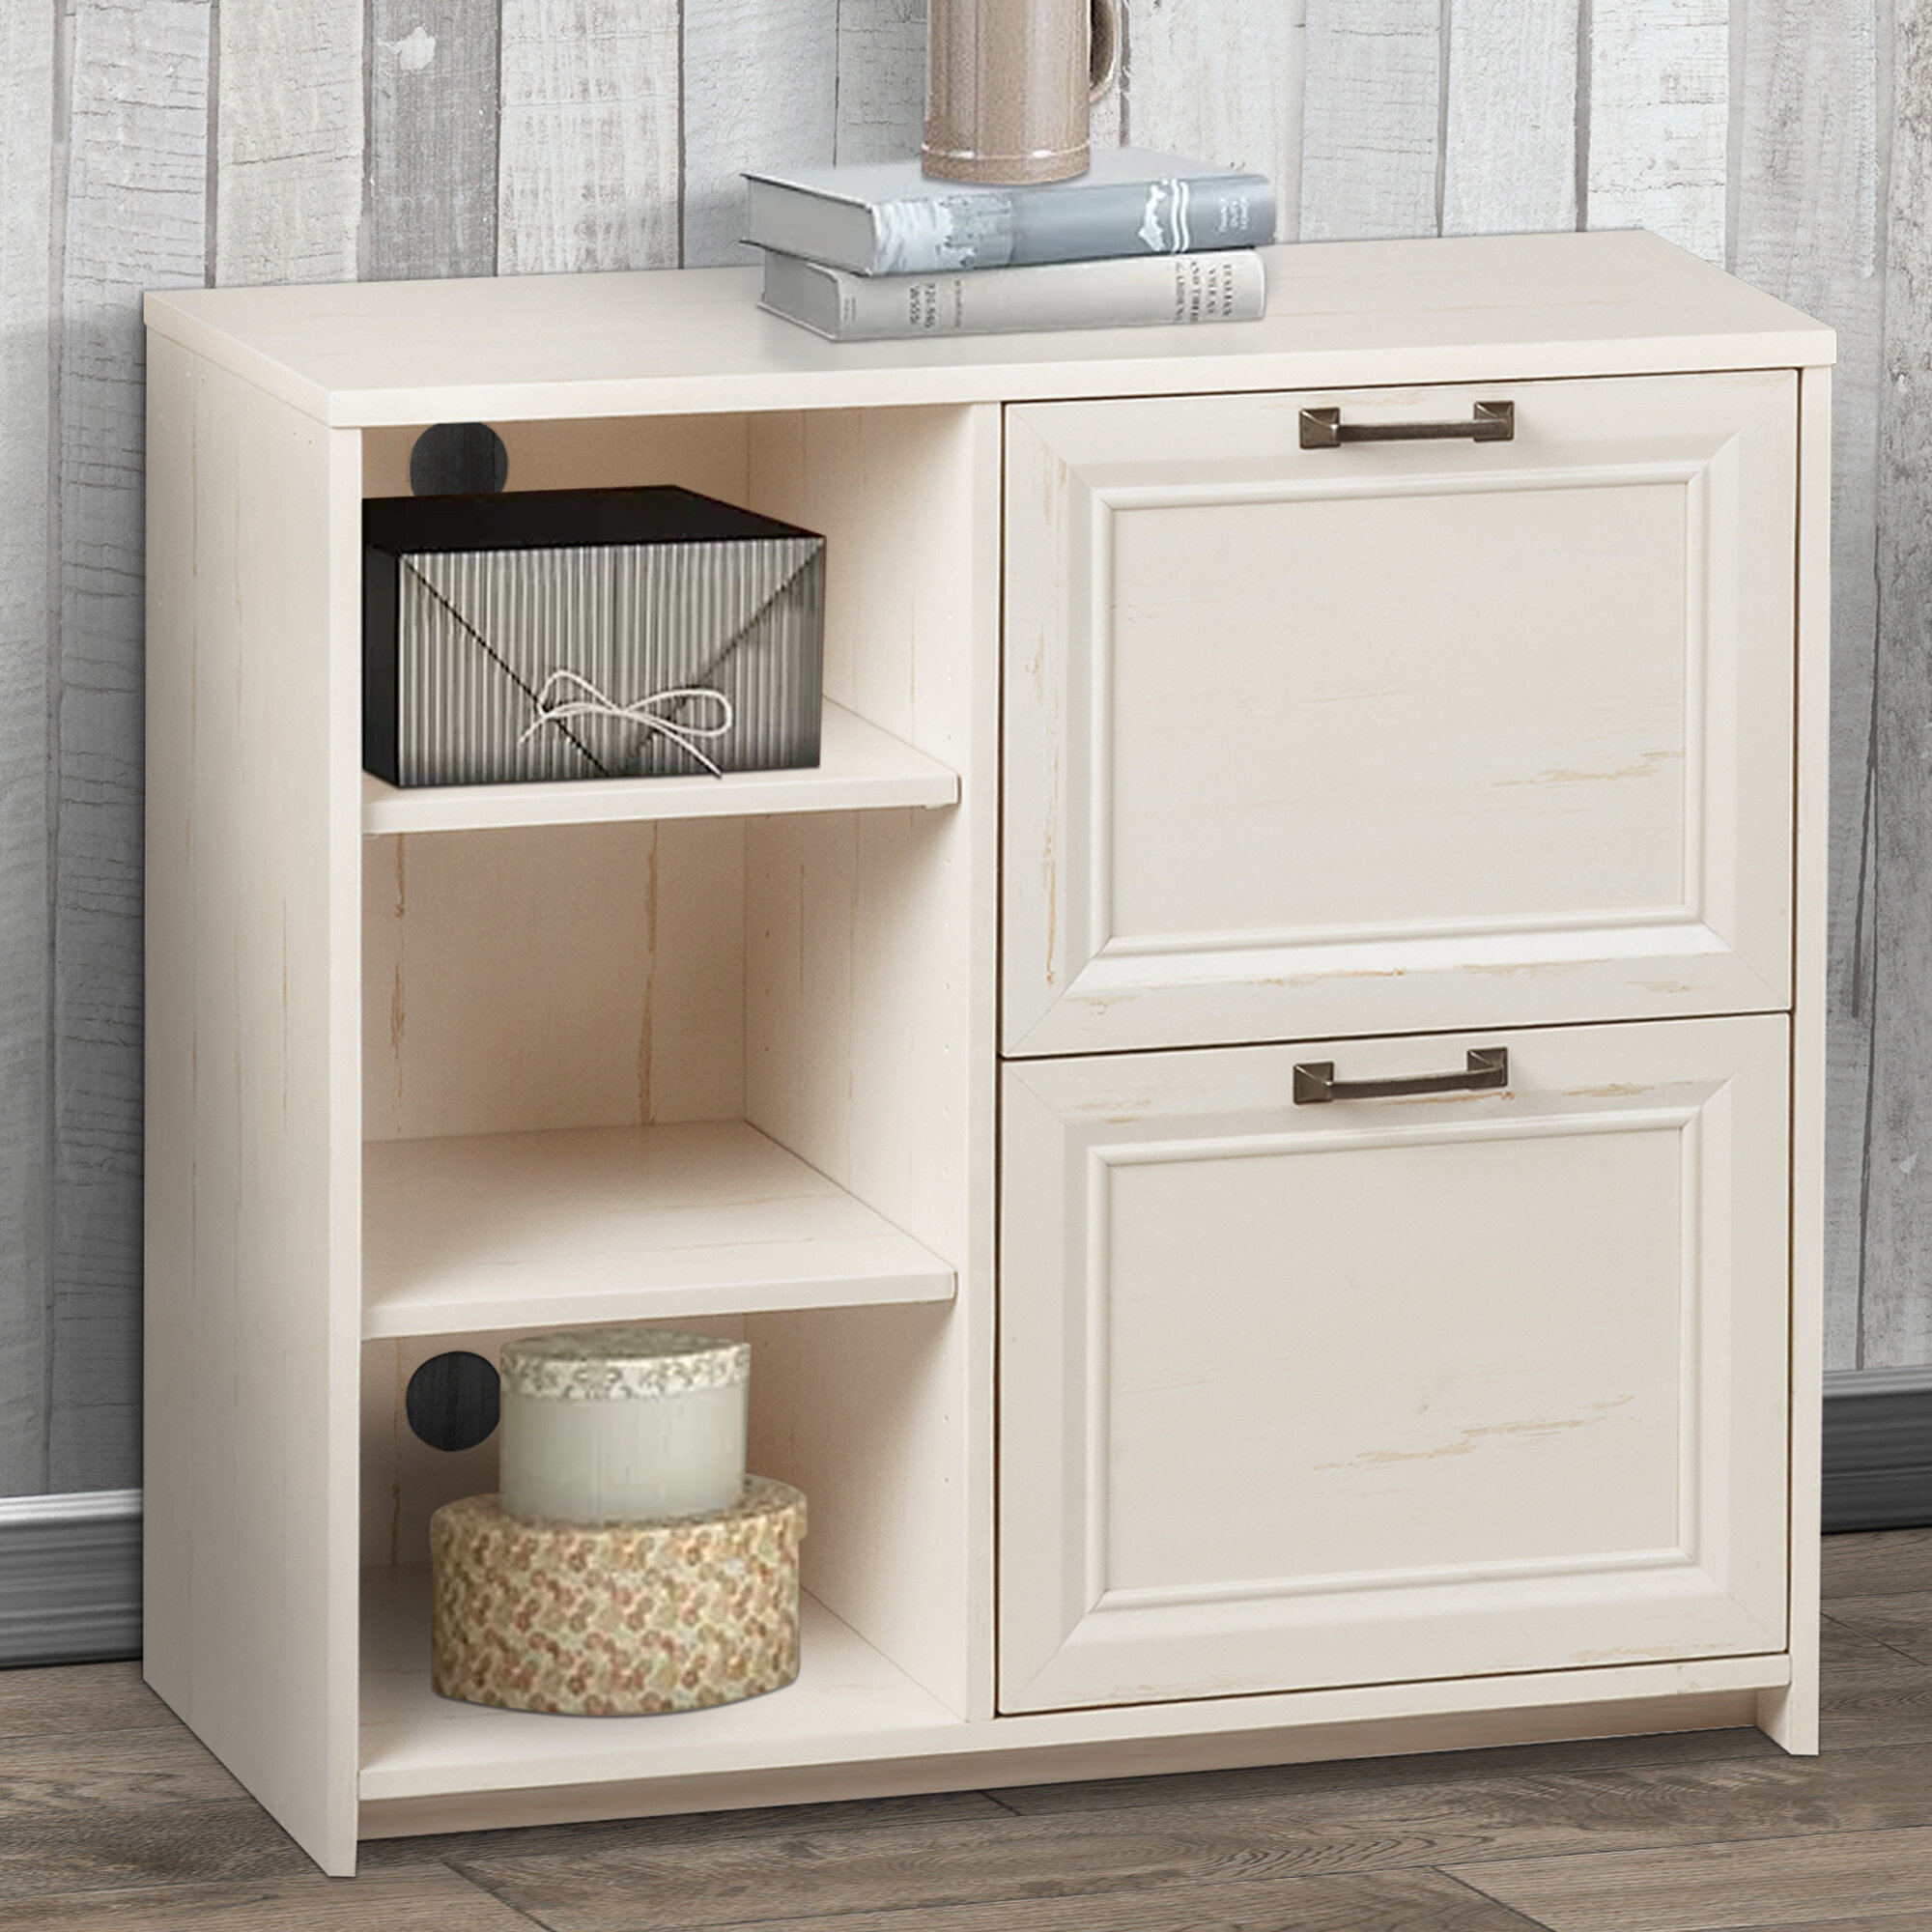 Oliwia 2 Drawer Lateral Filing Cabinet